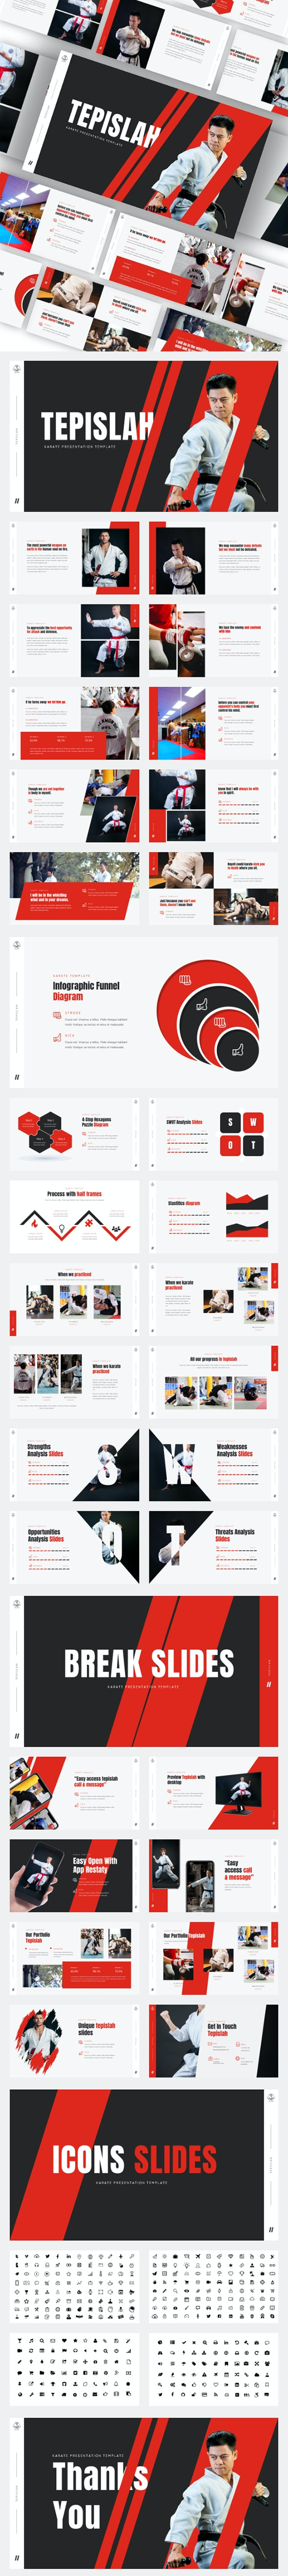 Tepislah - Karate & Martial Art Google Slides Template - Google Slides Presentation Templates